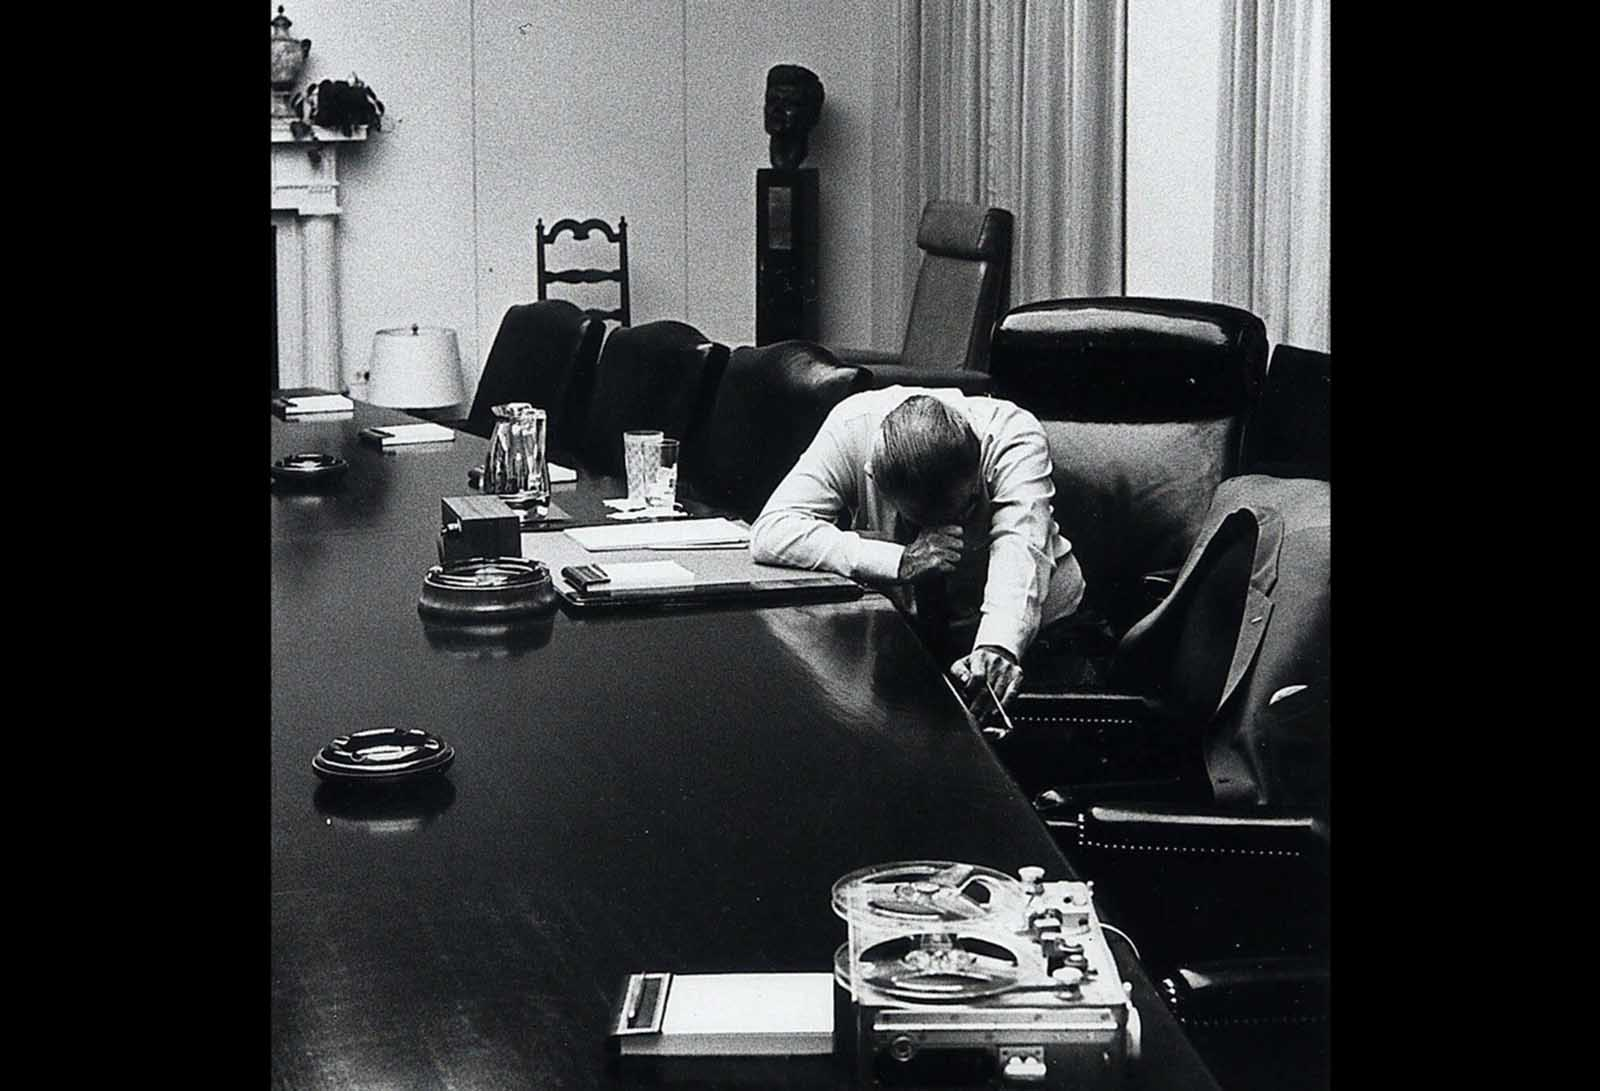 U.S. President Lyndon B. Johnson listens to a tape recording from his son-in-law Captain Charles Robb at the White House on July 31, 1968. Robb was a U.S. Marine Corps company commander in Vietnam at the time. Robb was later awarded the Bronze Star and, after returning home, became governor of Virginia in 1982, and later a senator for the same state.